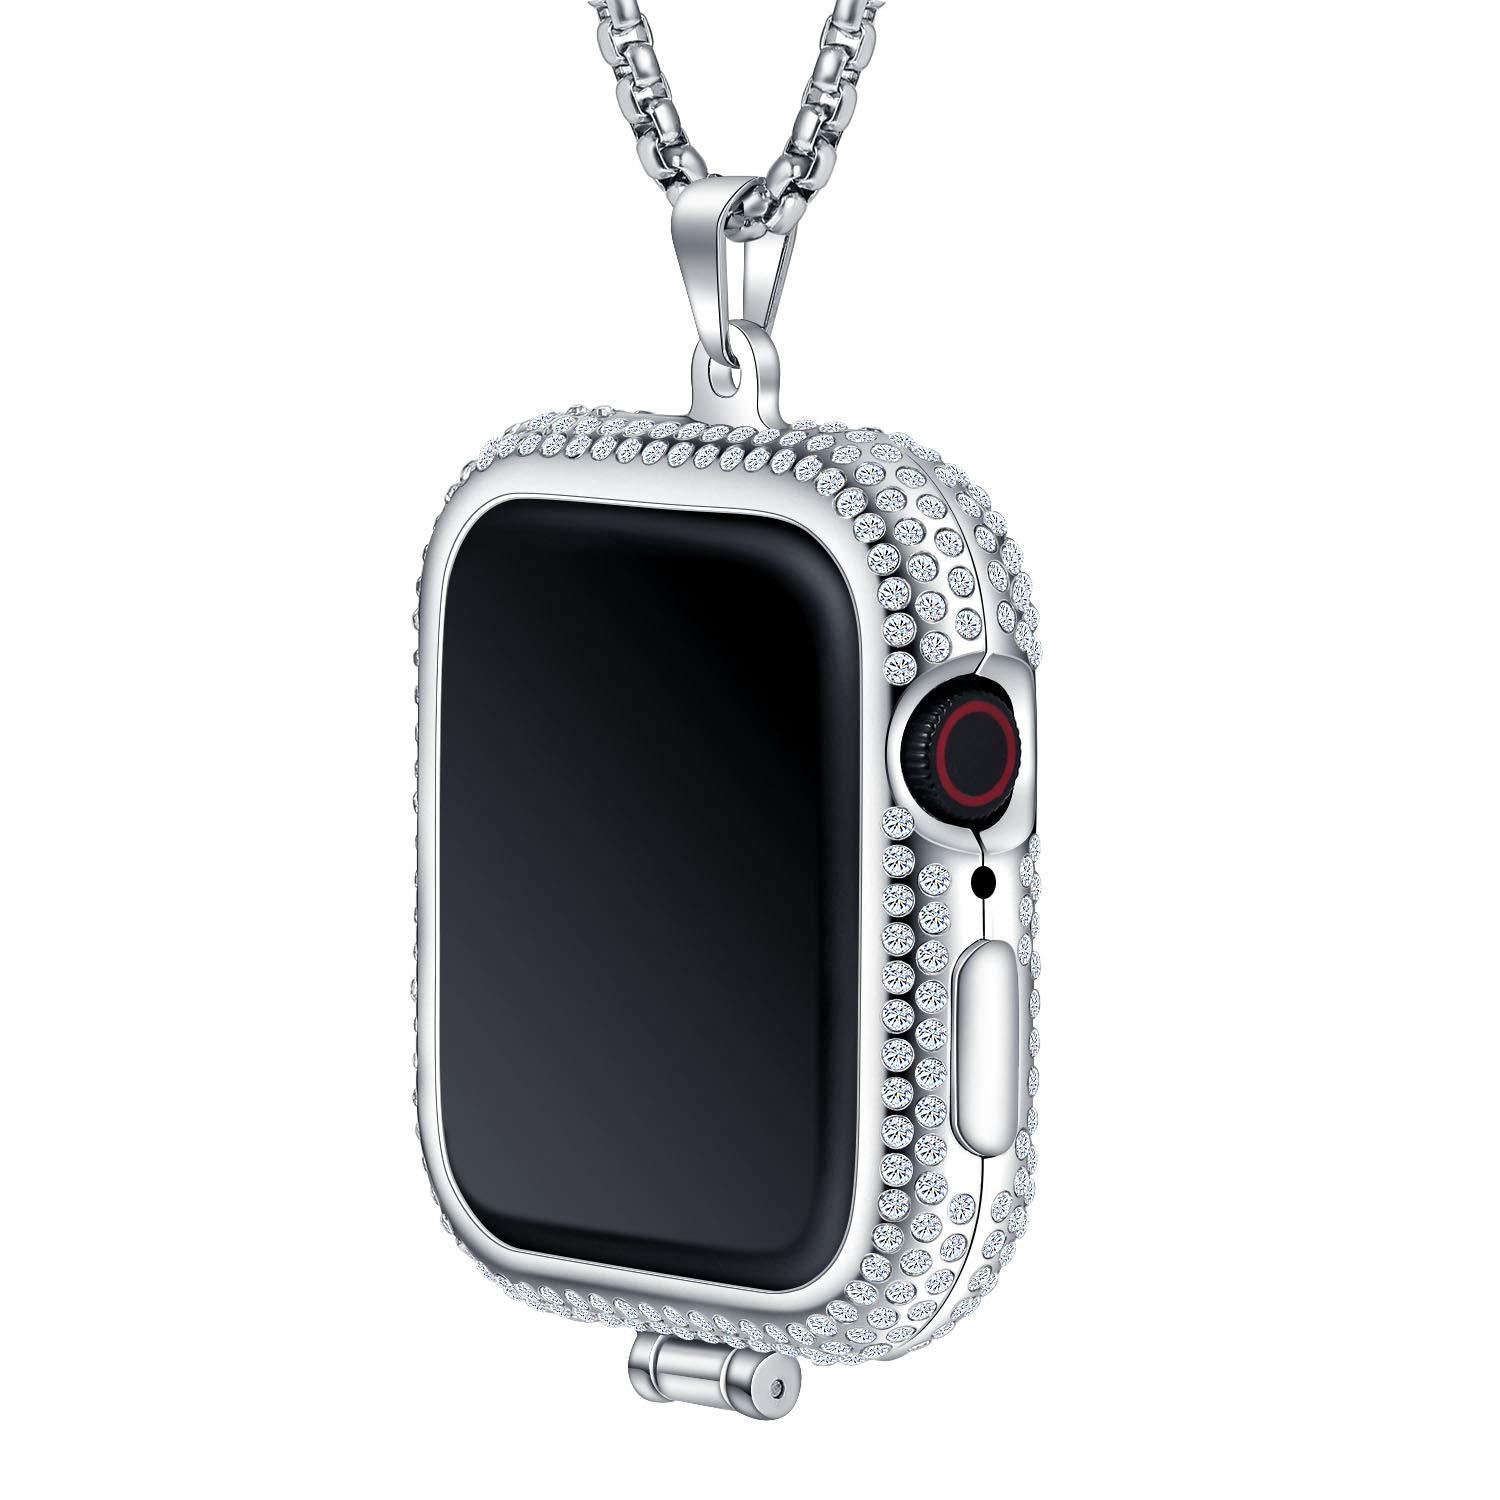 Callancity Metal Rhinestone Face Cover Plated Luxury Color Compatible for Apple Watch Pocket Watch Series 4 (Platinum, 44mm) by Callancity